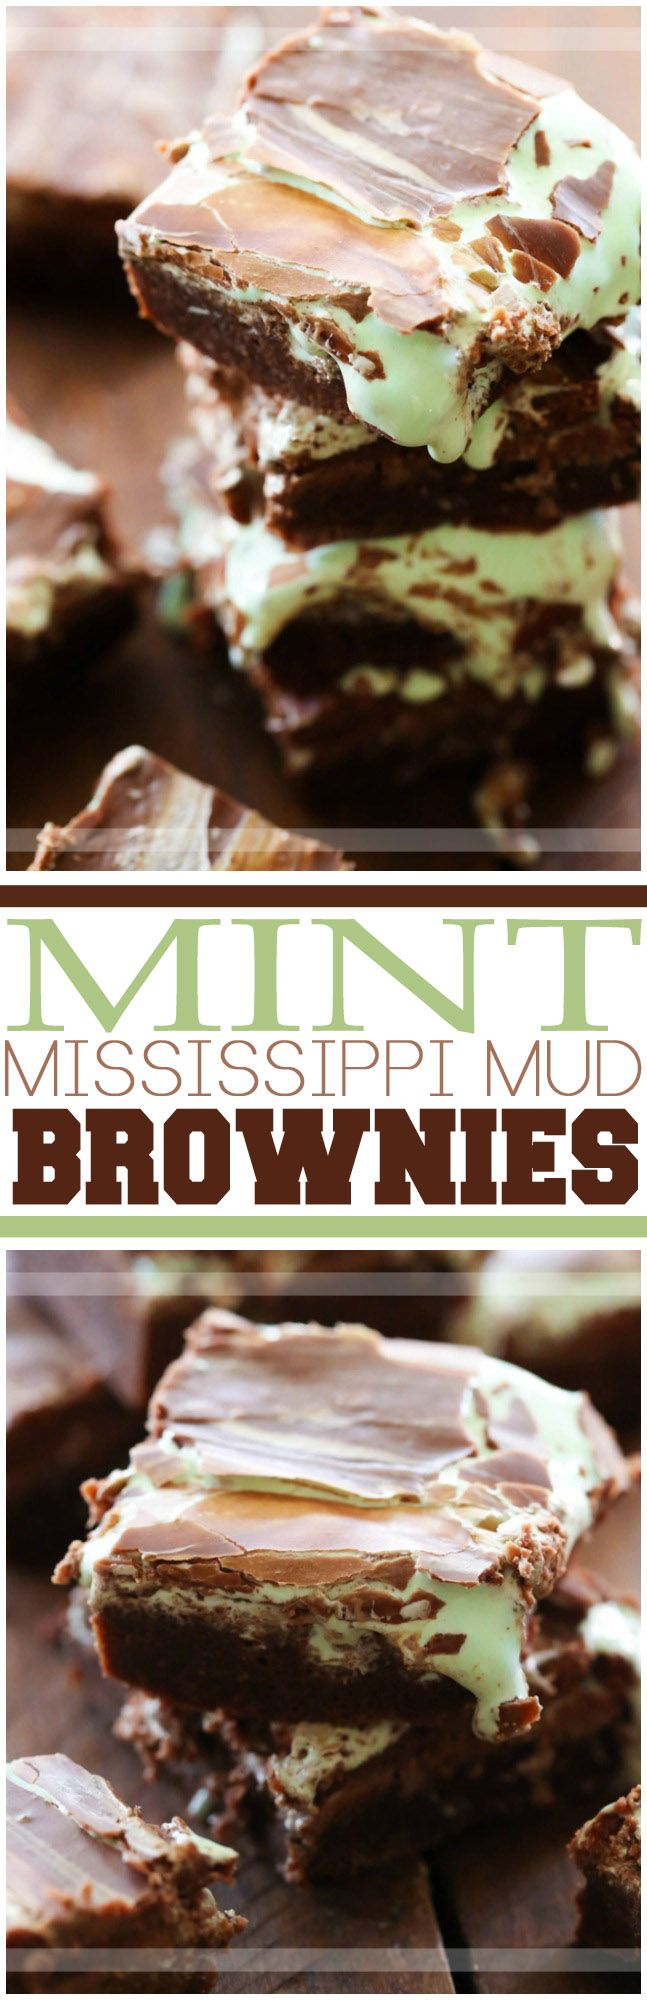 Mint Mississippi Mud Brownies... These brownies are ooey gooey and absolutely delicious!